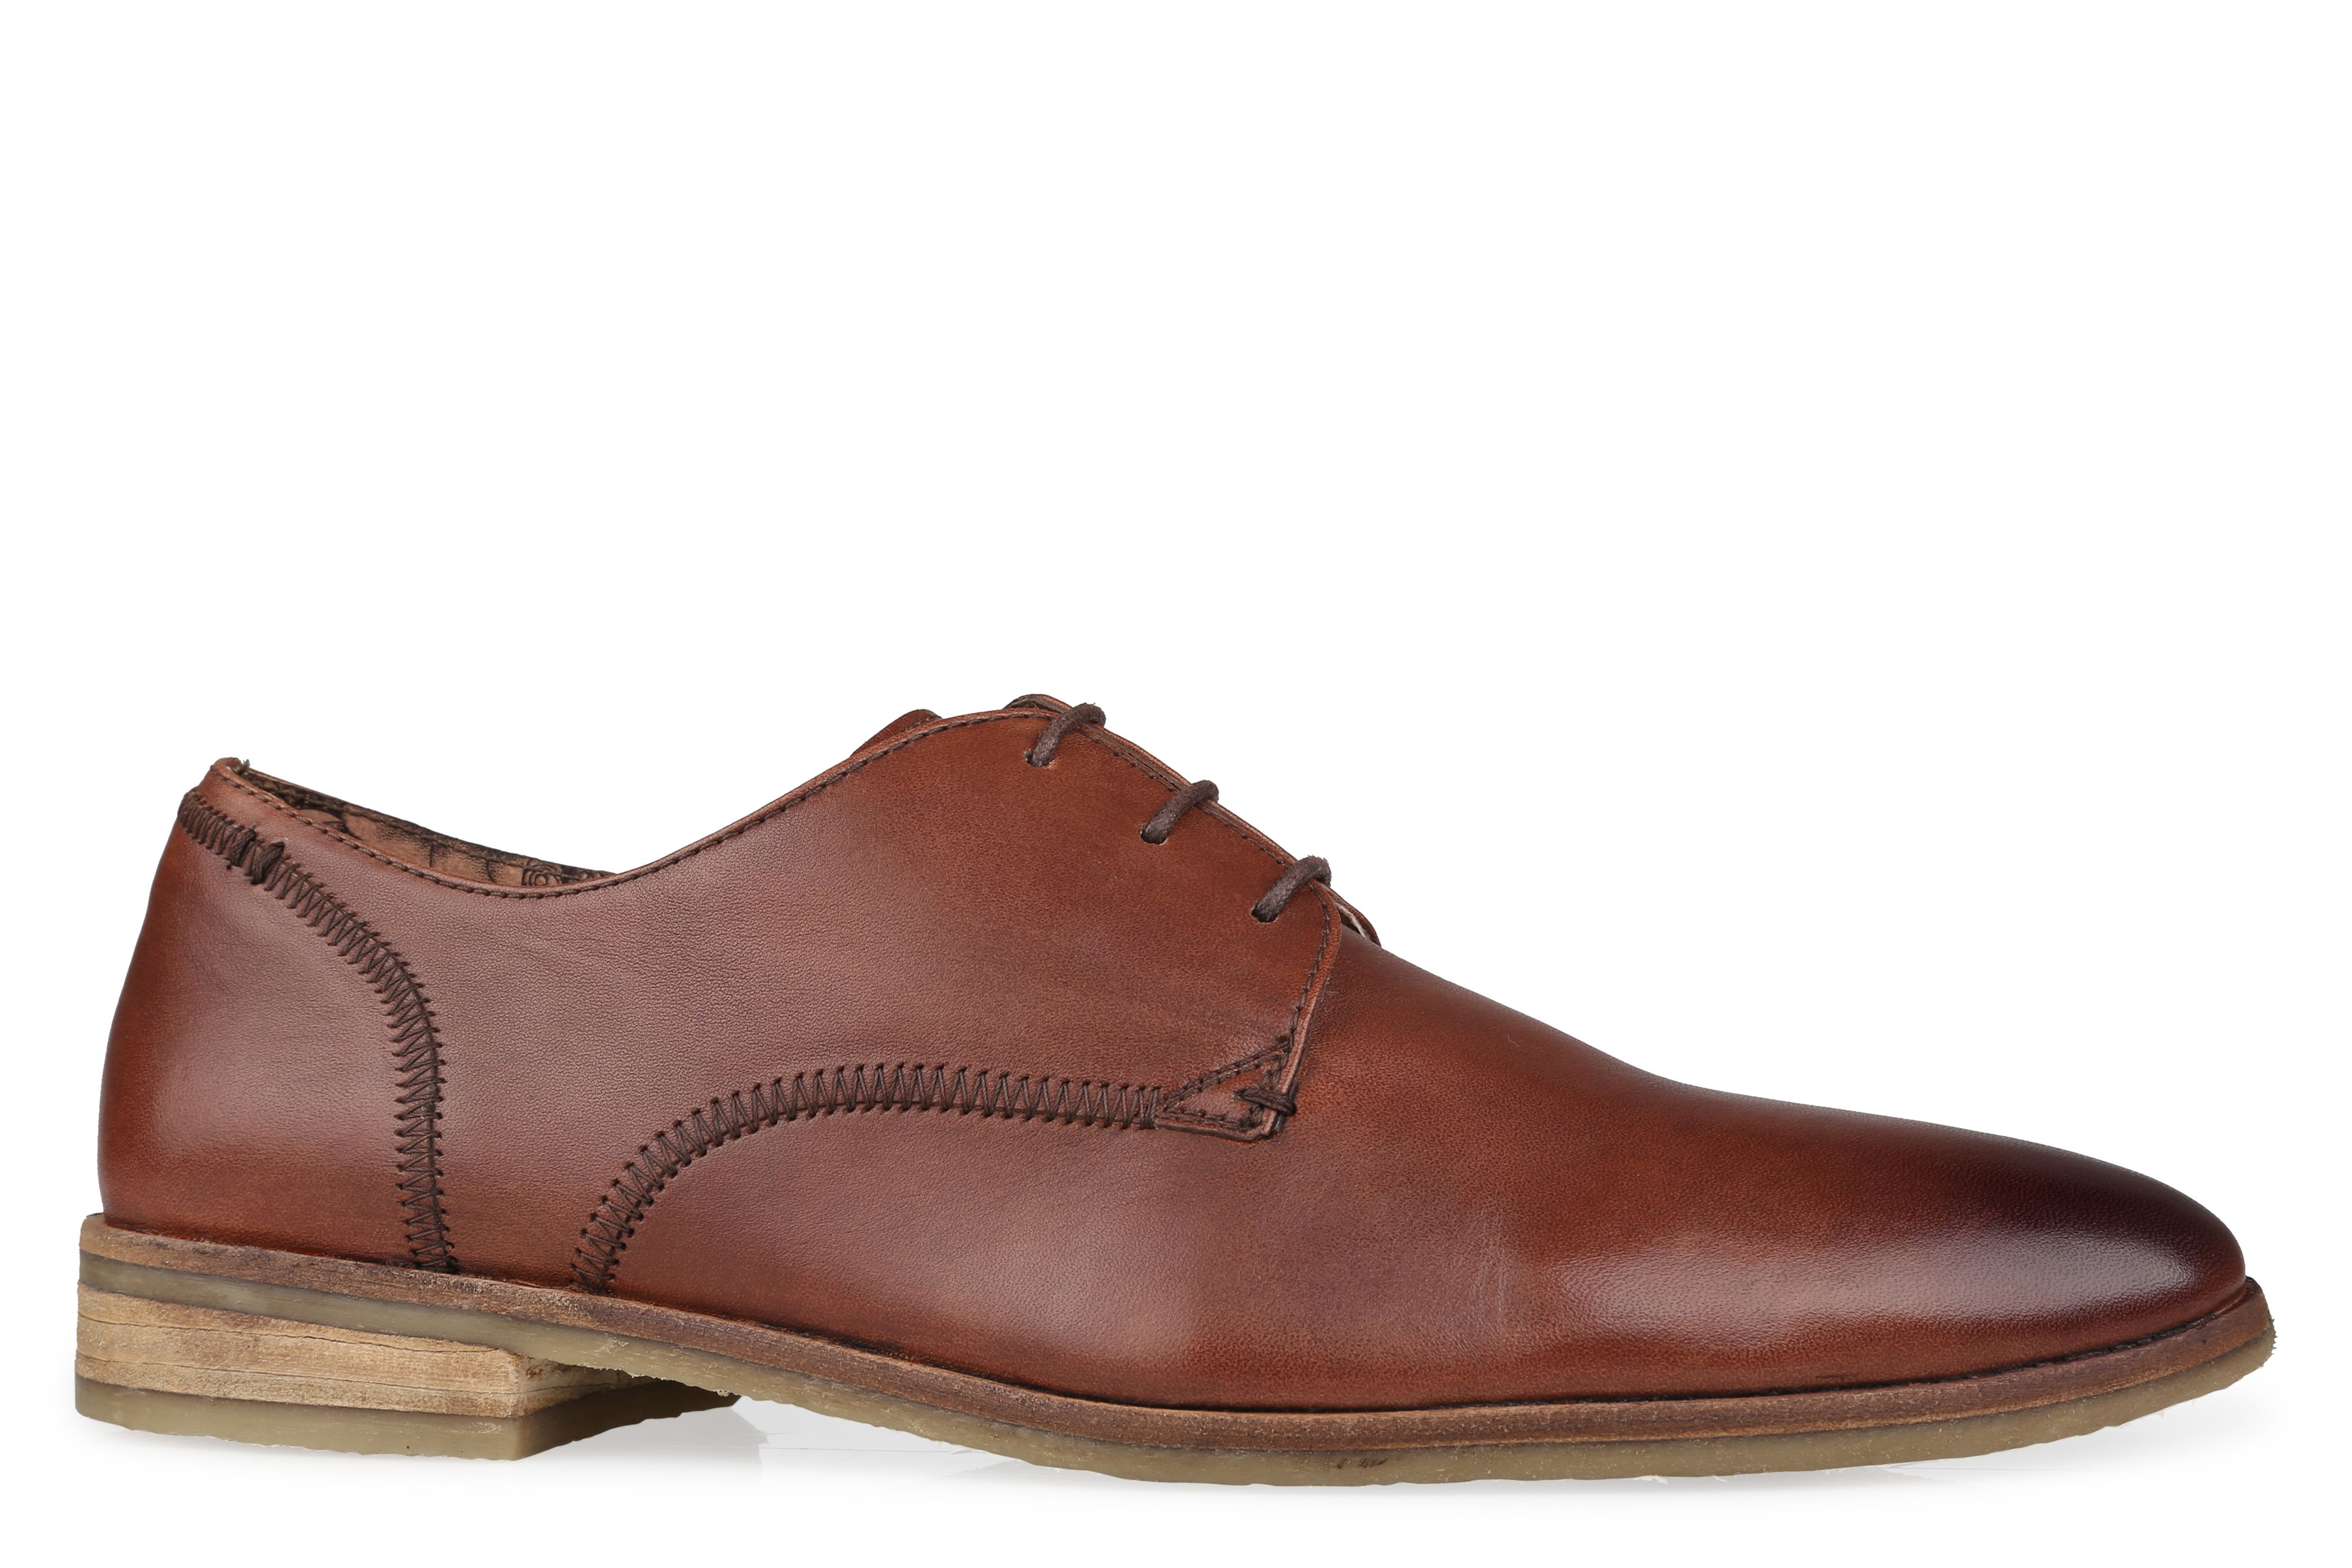 70007722b8c Discover ideas about New Mens Fashion. Buy the latest Men's Shoes ...